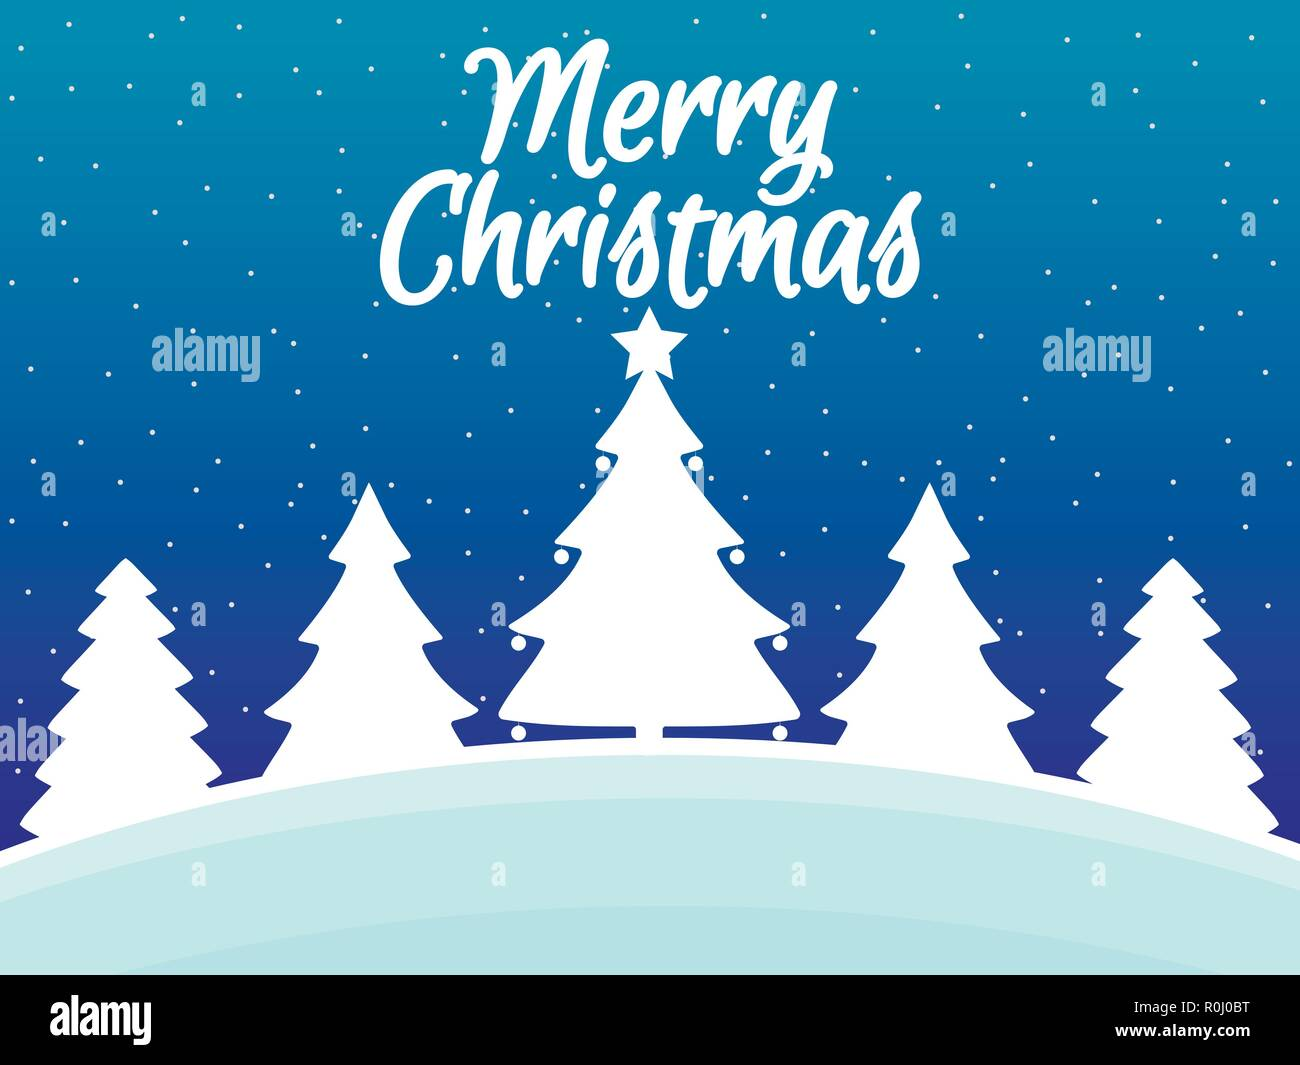 Merry Christmas Winter Landscape With Snowflakes And Christmas Trees Xmas Background Vector Illustration Stock Vector Image Art Alamy